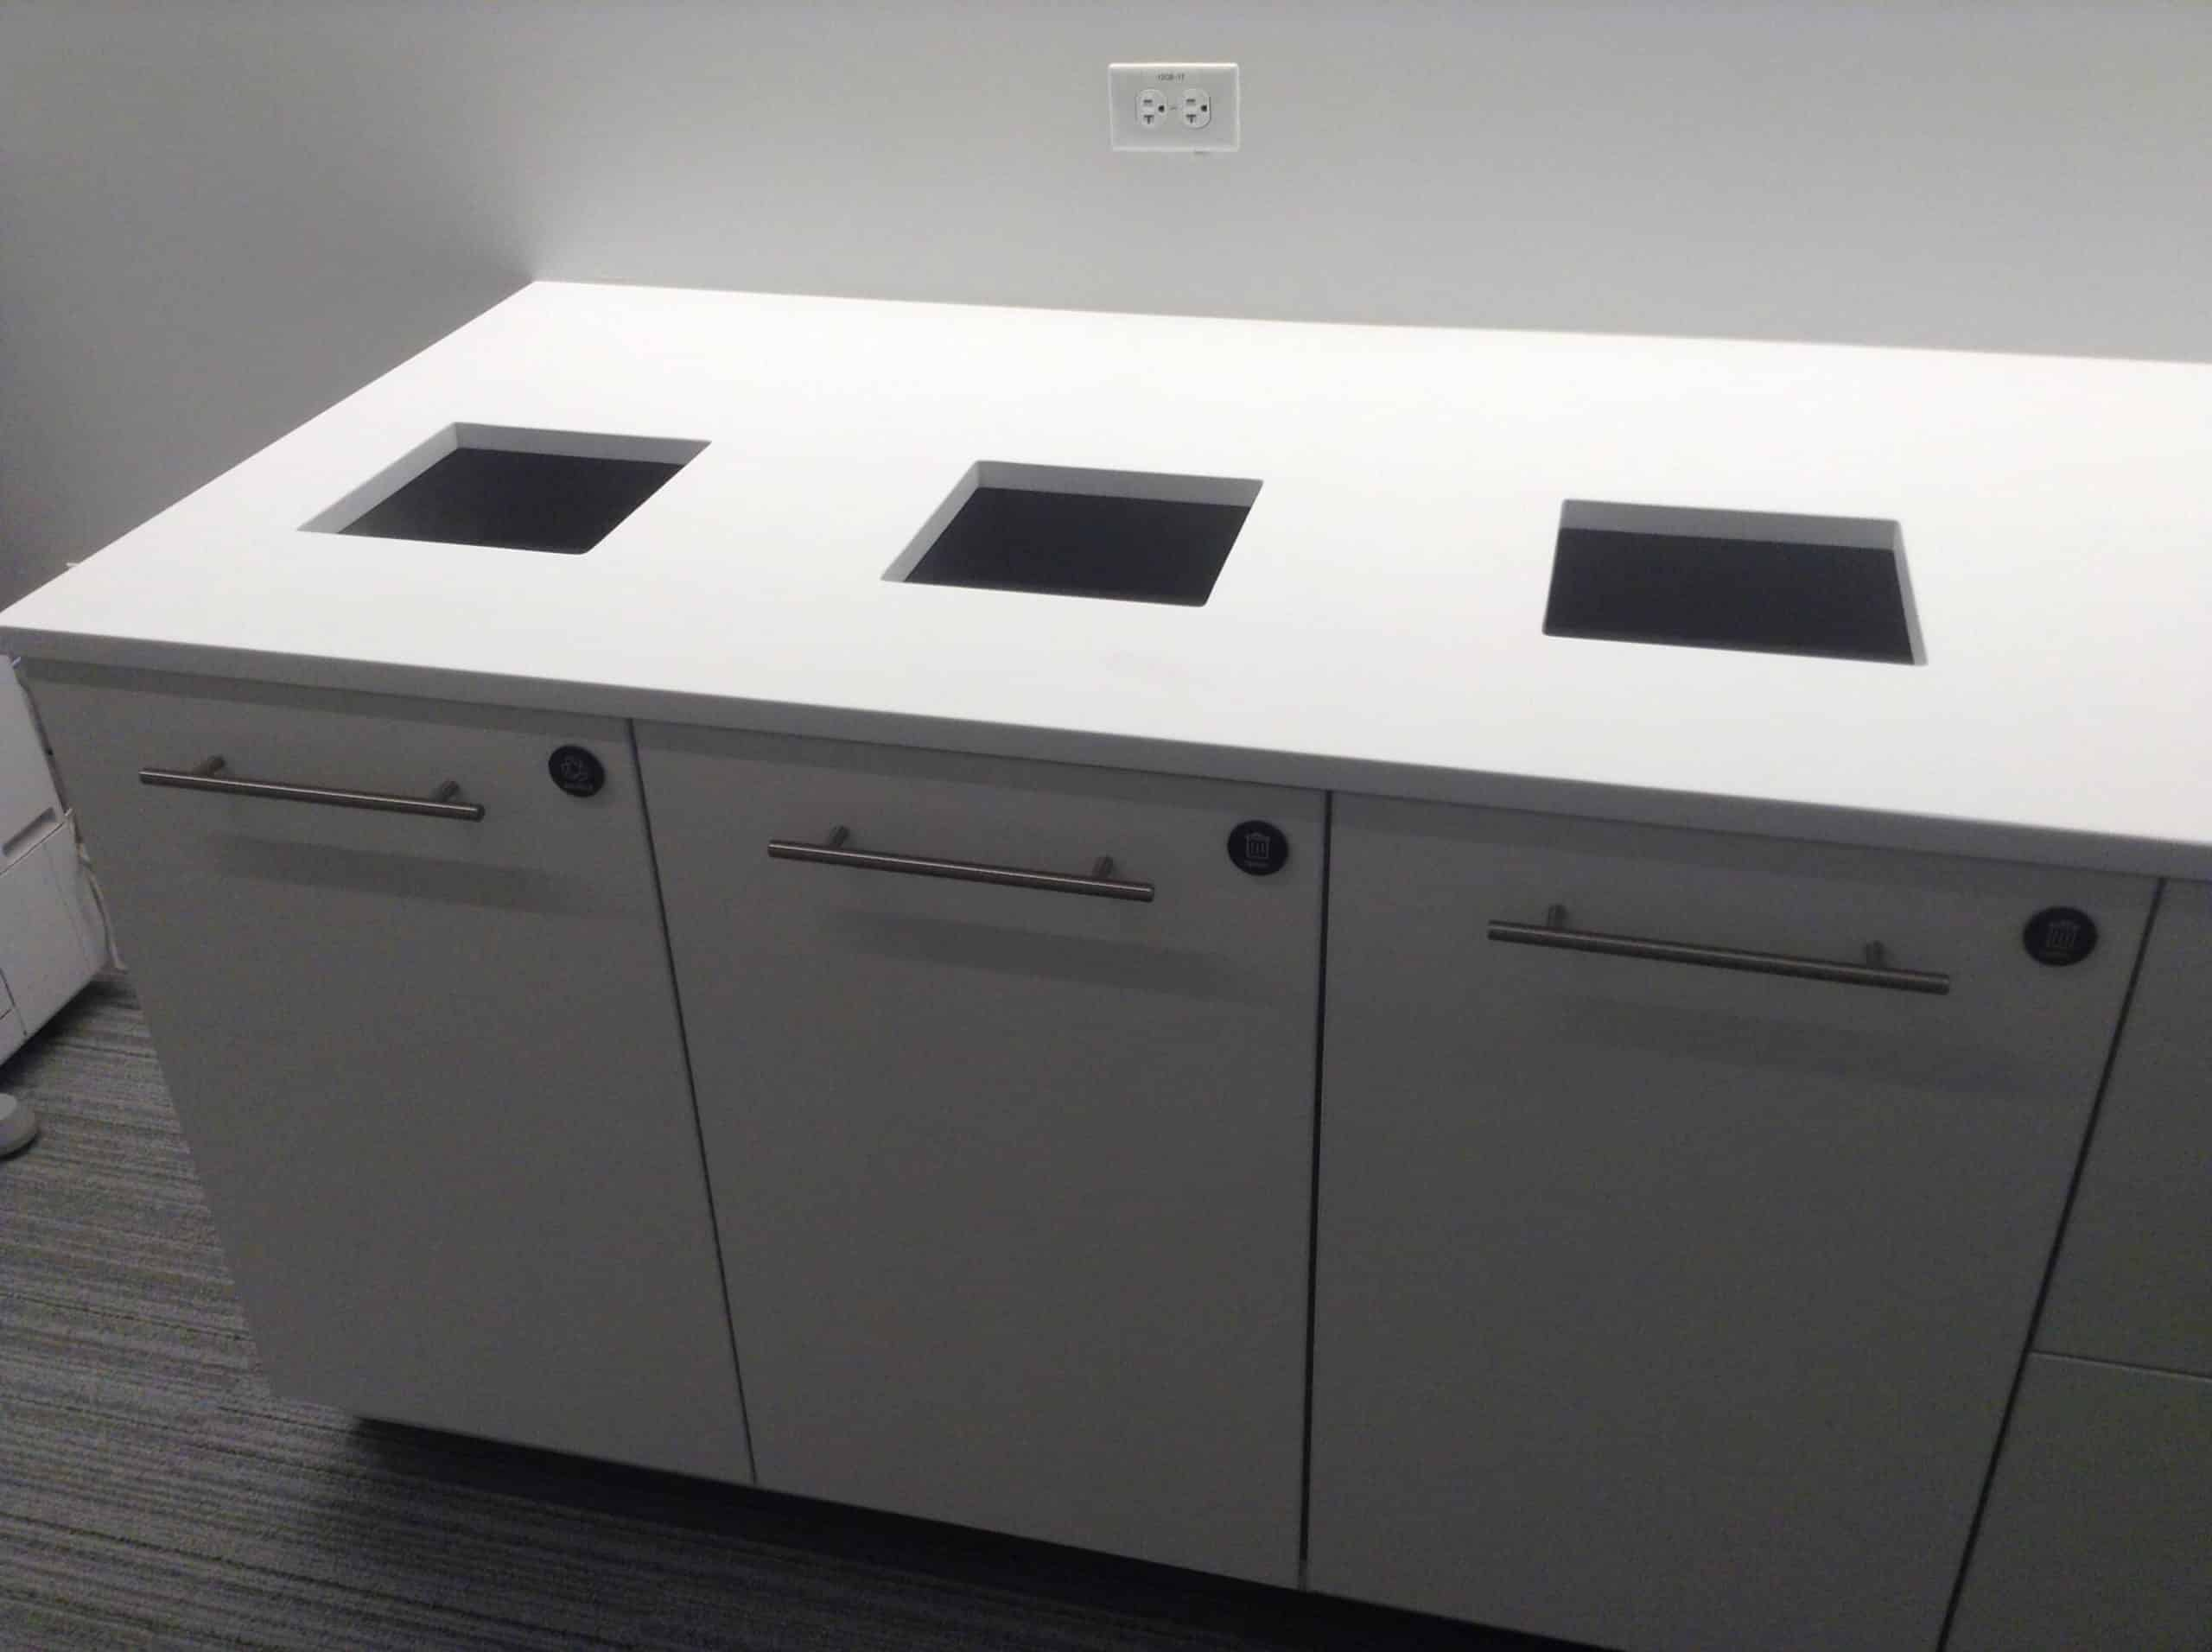 Hamilton Casework Recycling Stations